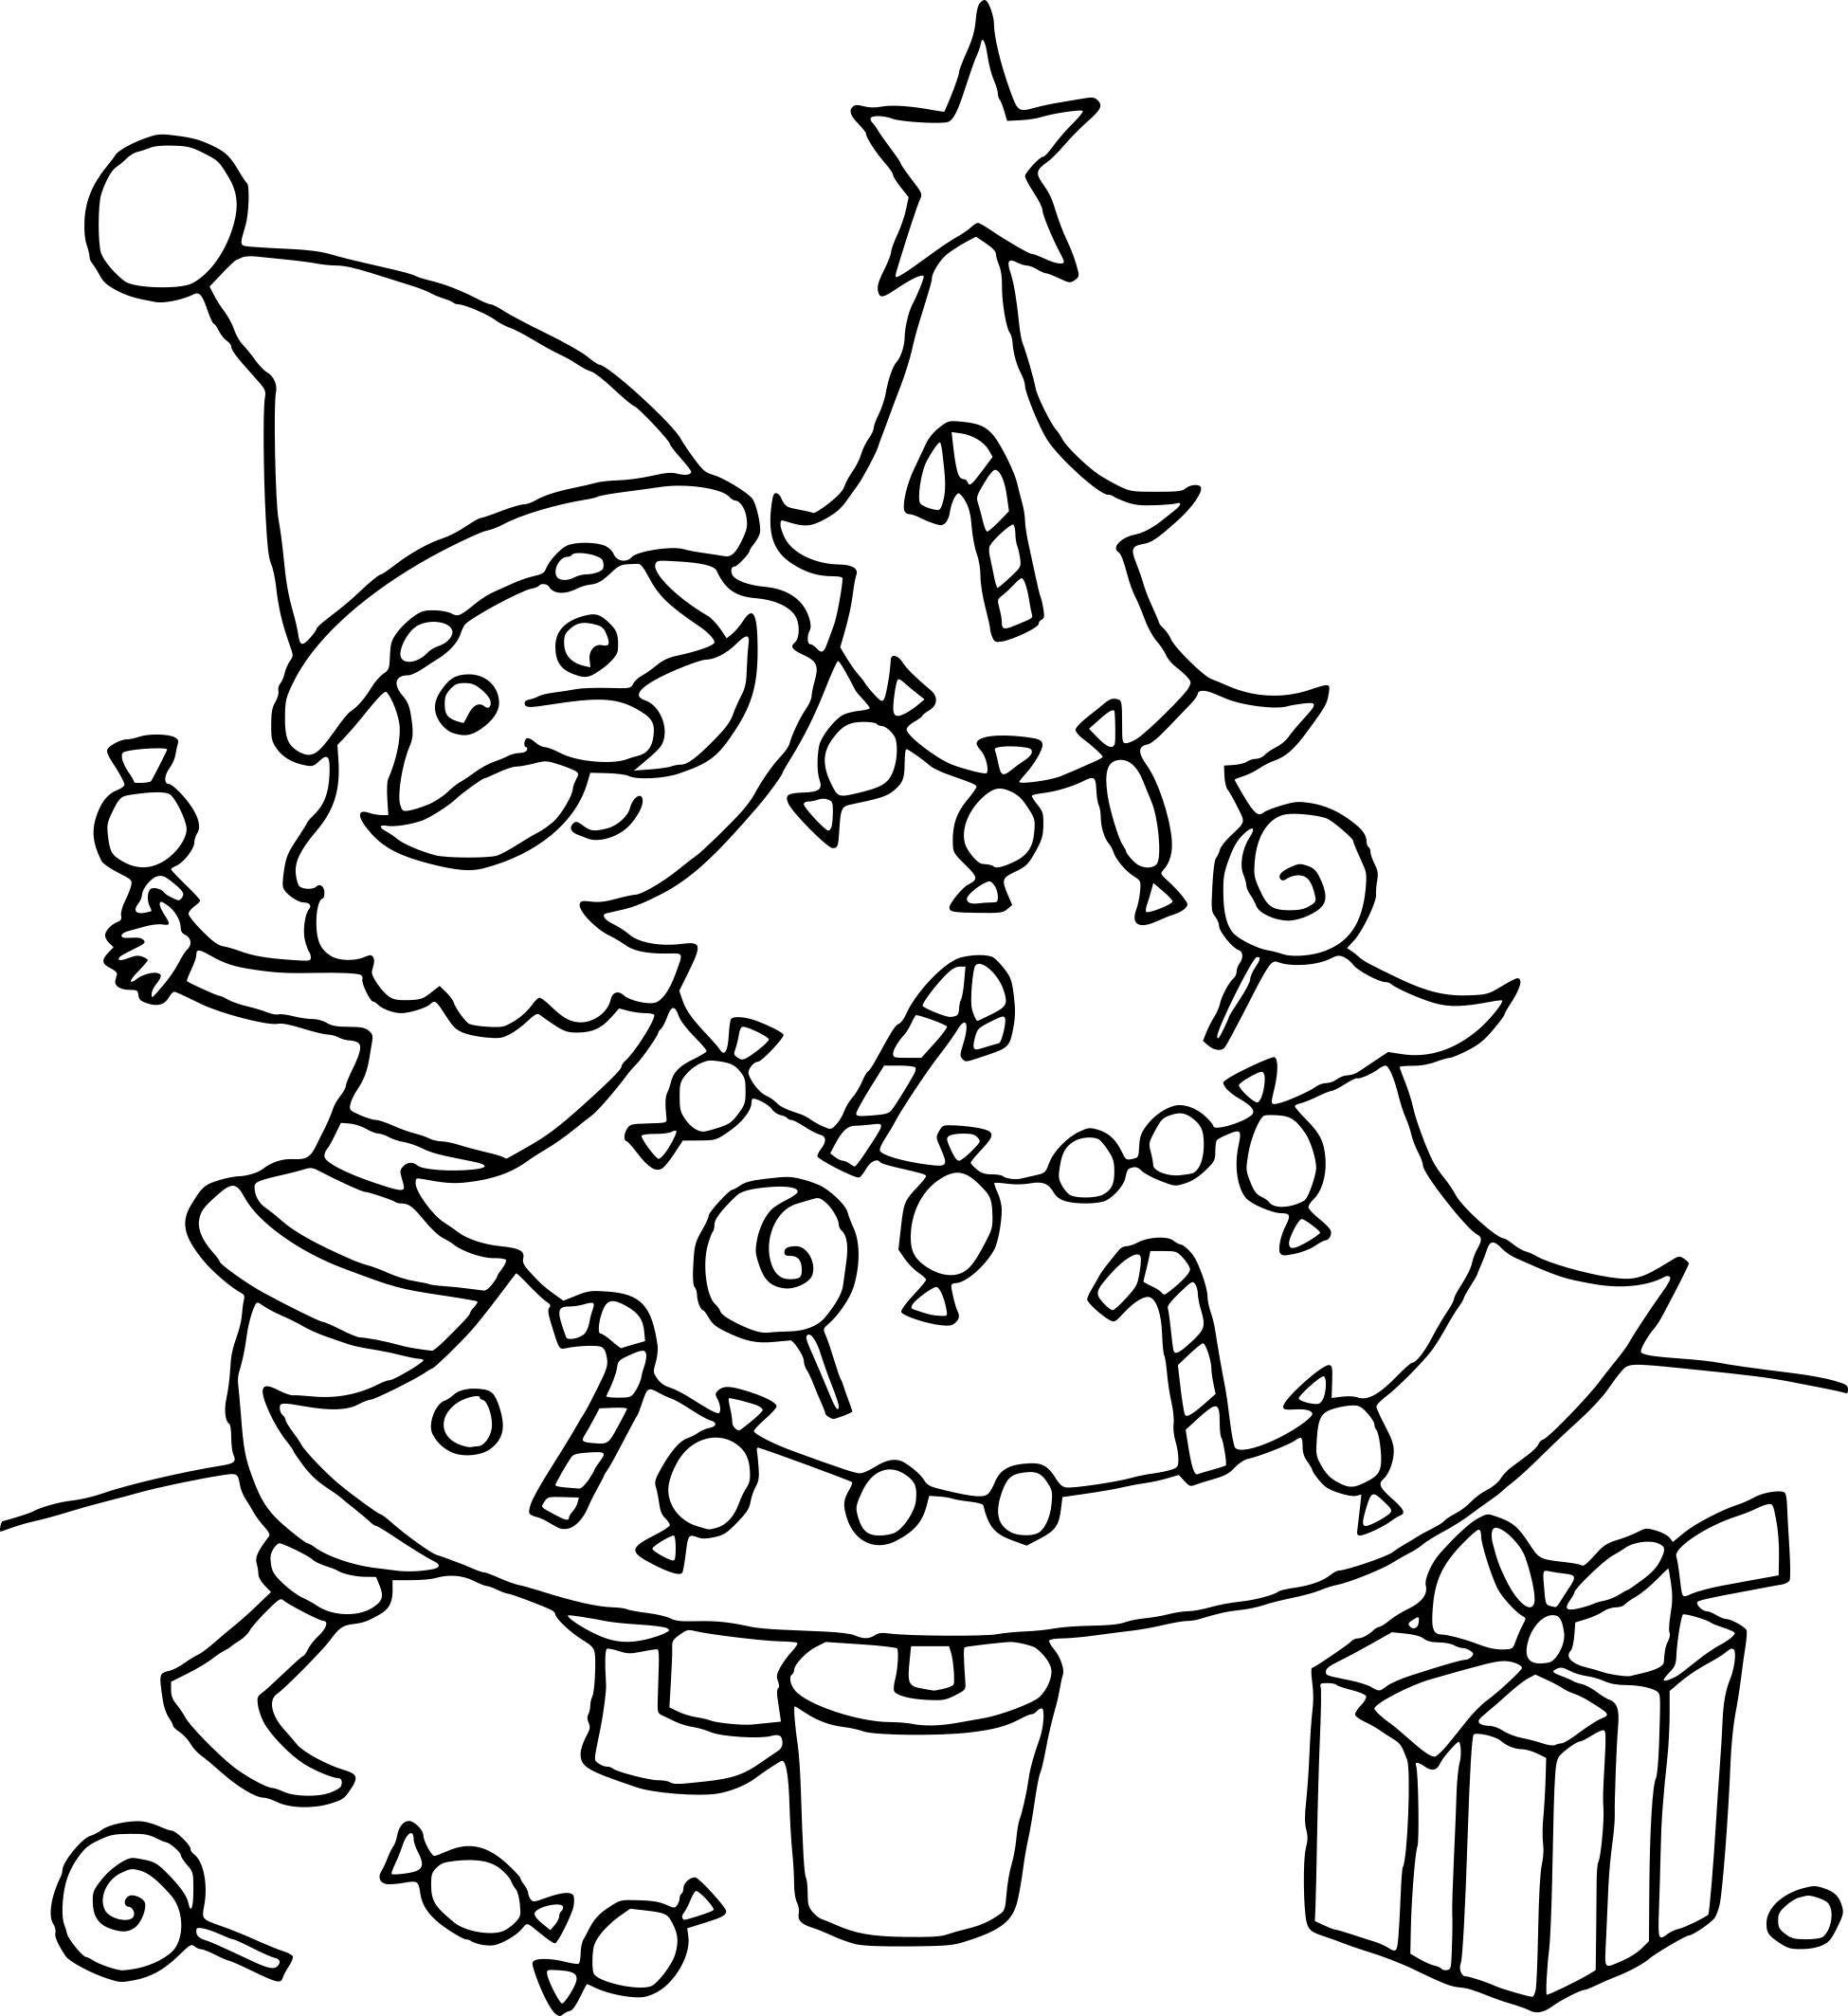 coloriage sapin de noel et pere noel imprimer. Black Bedroom Furniture Sets. Home Design Ideas